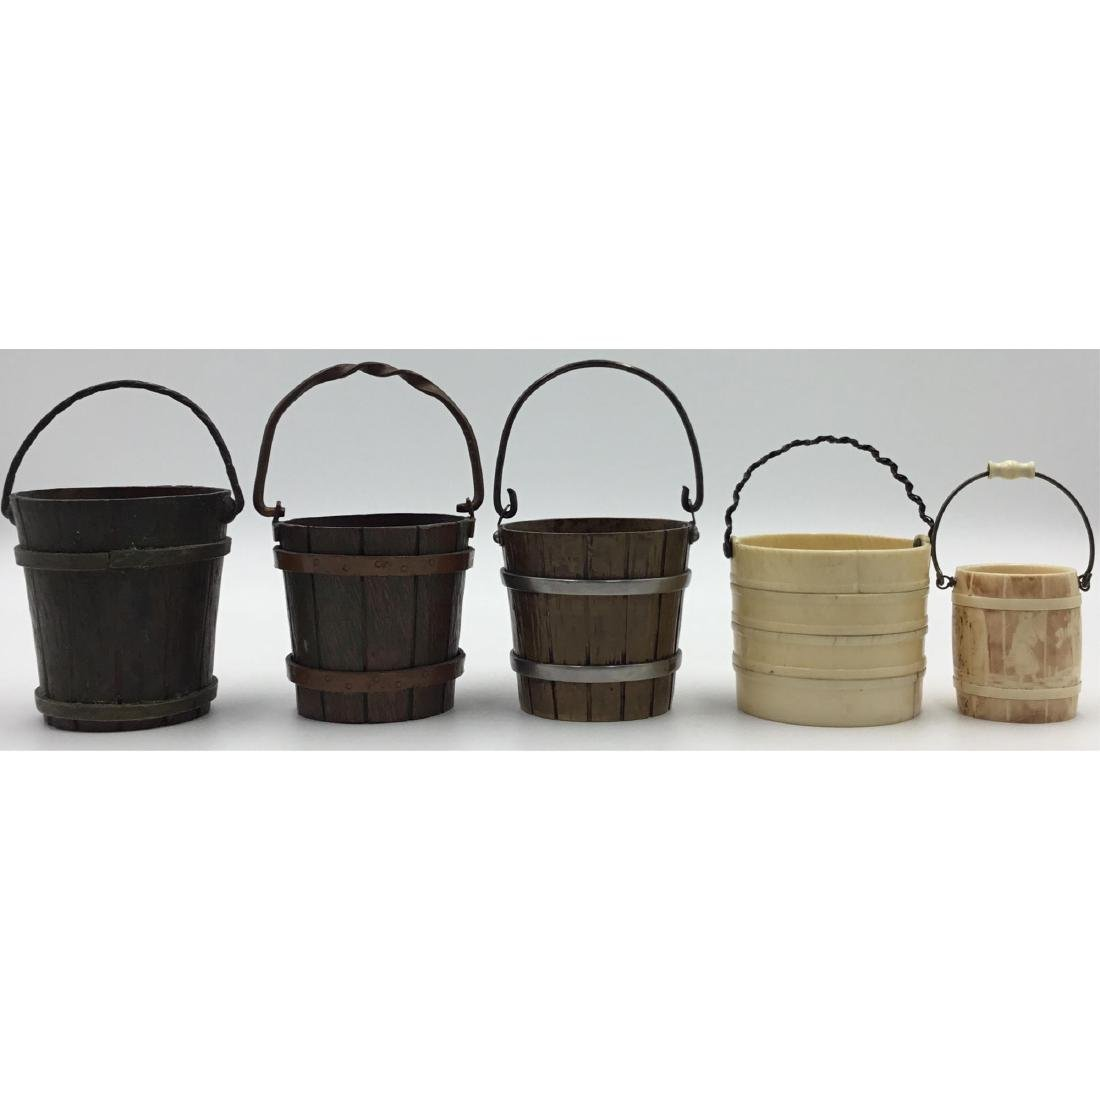 GROUP OF 5 ANTIQUE FRENCH MINIATURE BUCKETS